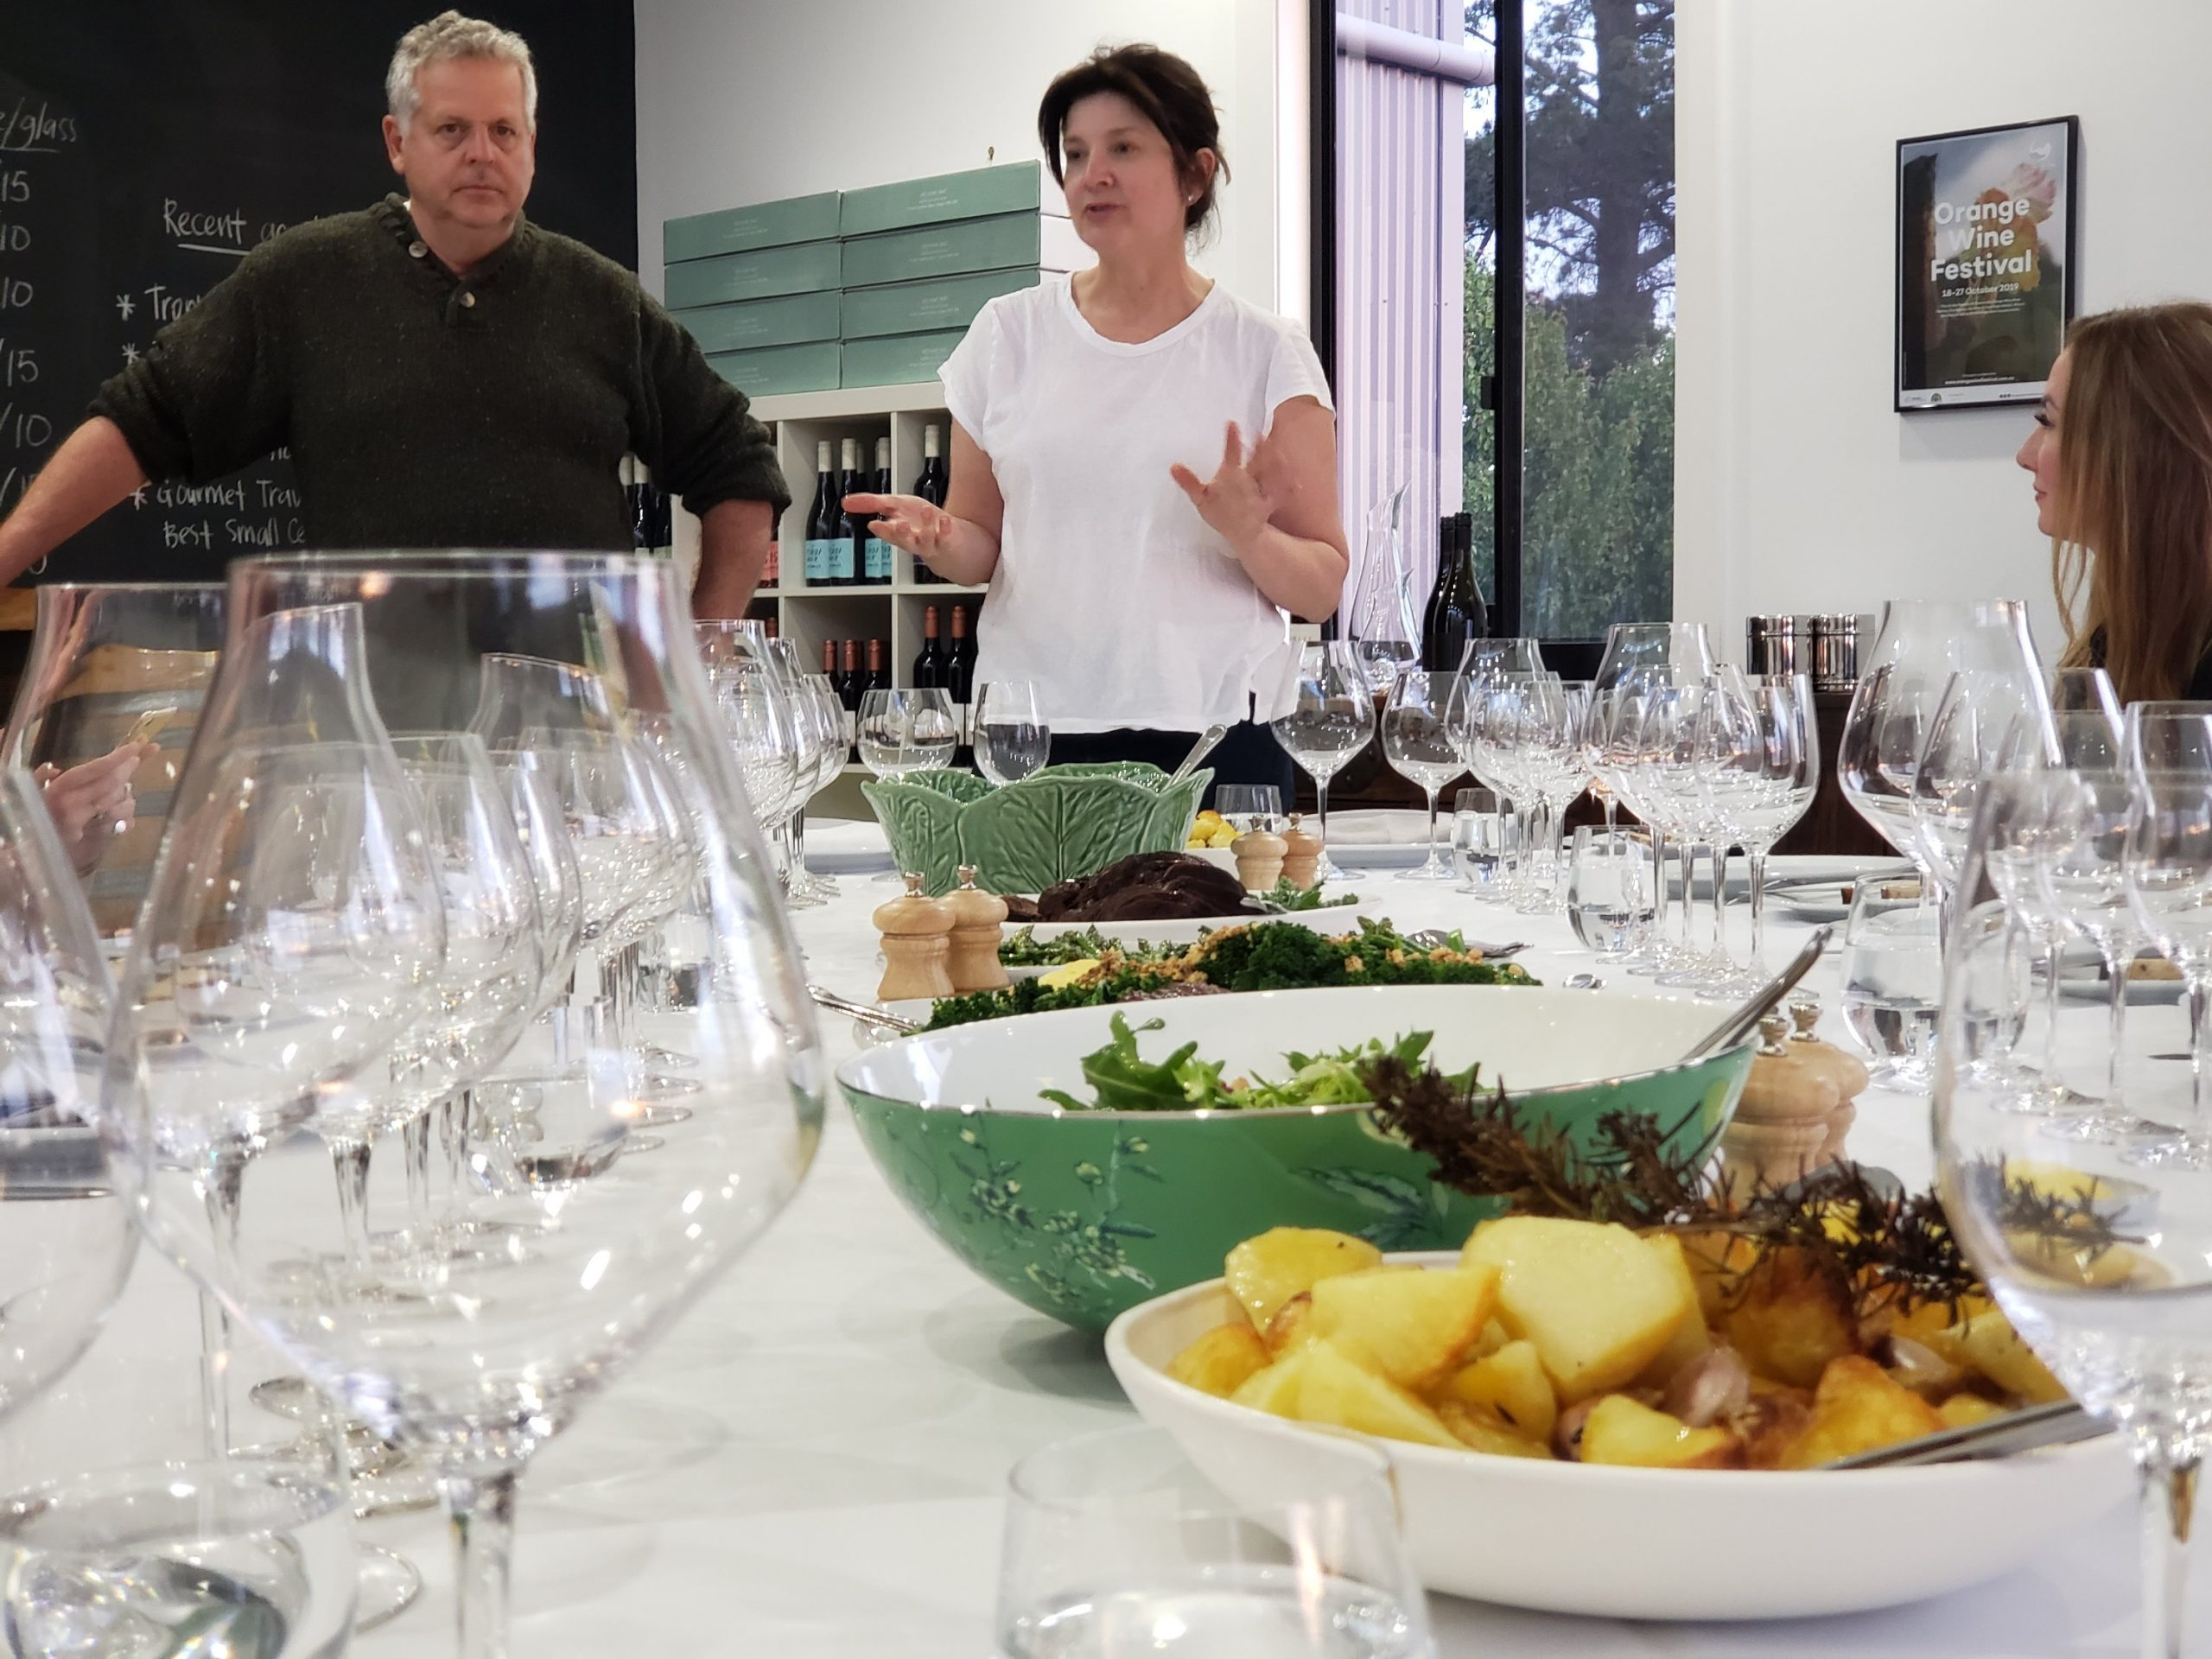 Over a spectacular dinner we learned so much about the wines and the people behind them at Rowlee Wines.